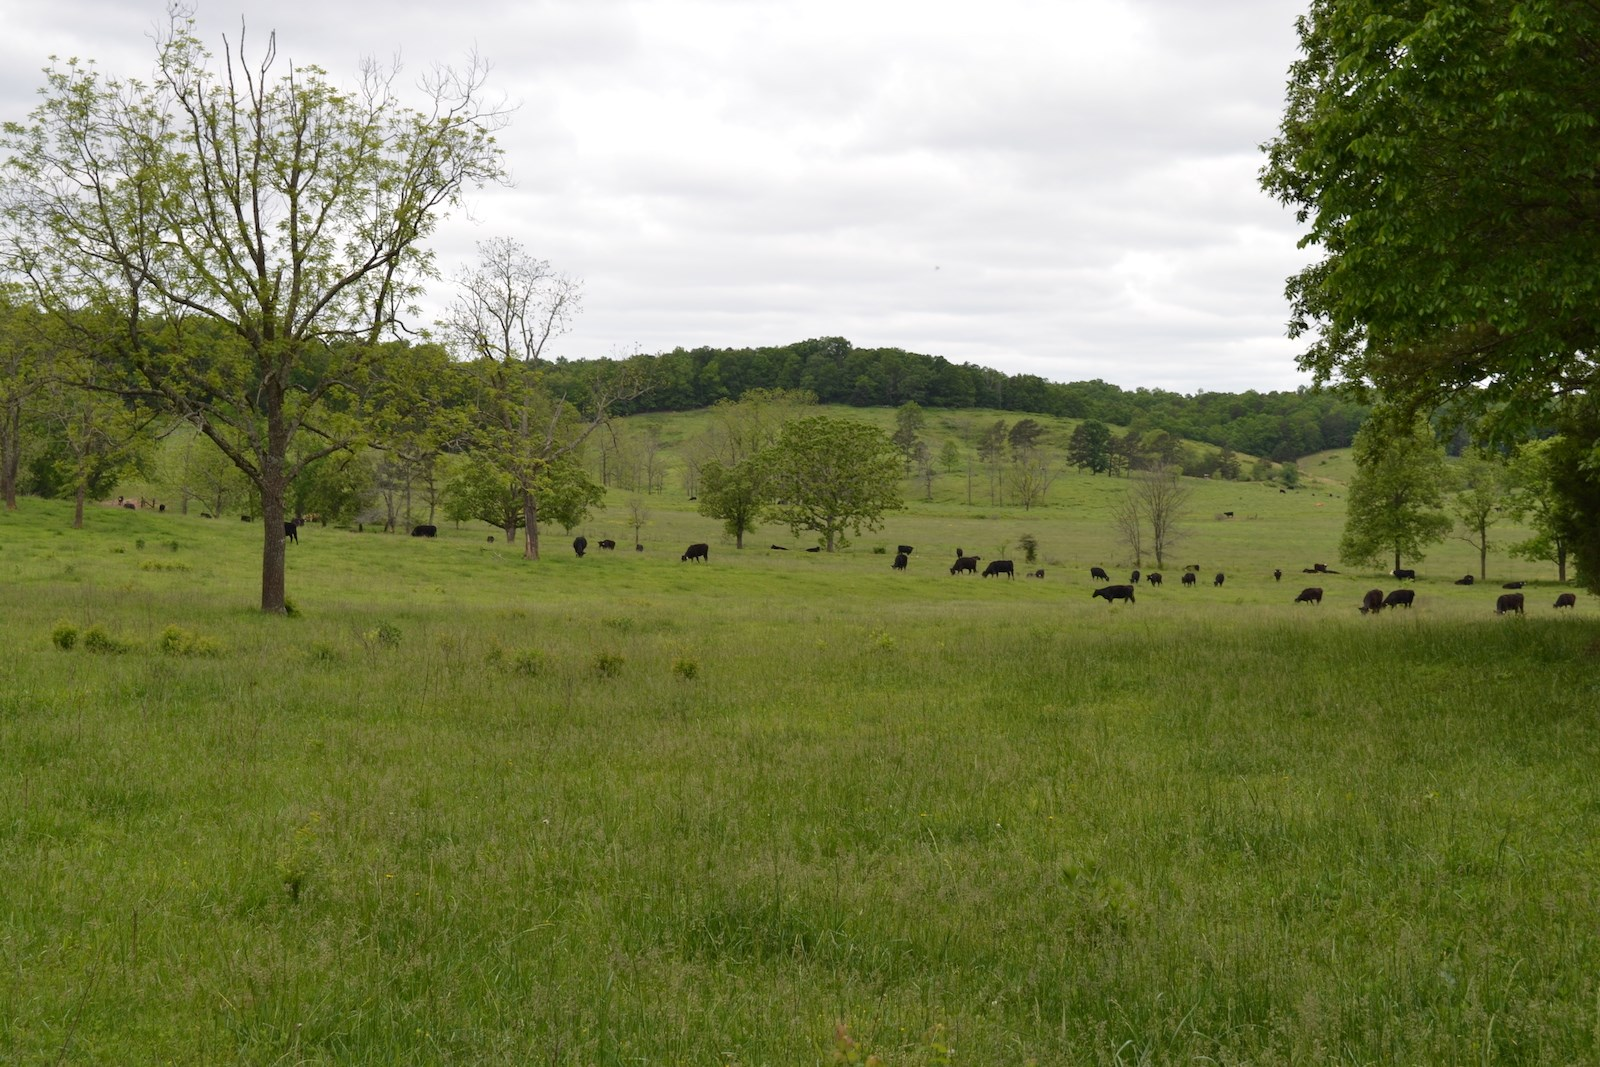 Missouri Horse Farm or Cattle Ranch For Sale - Carter County